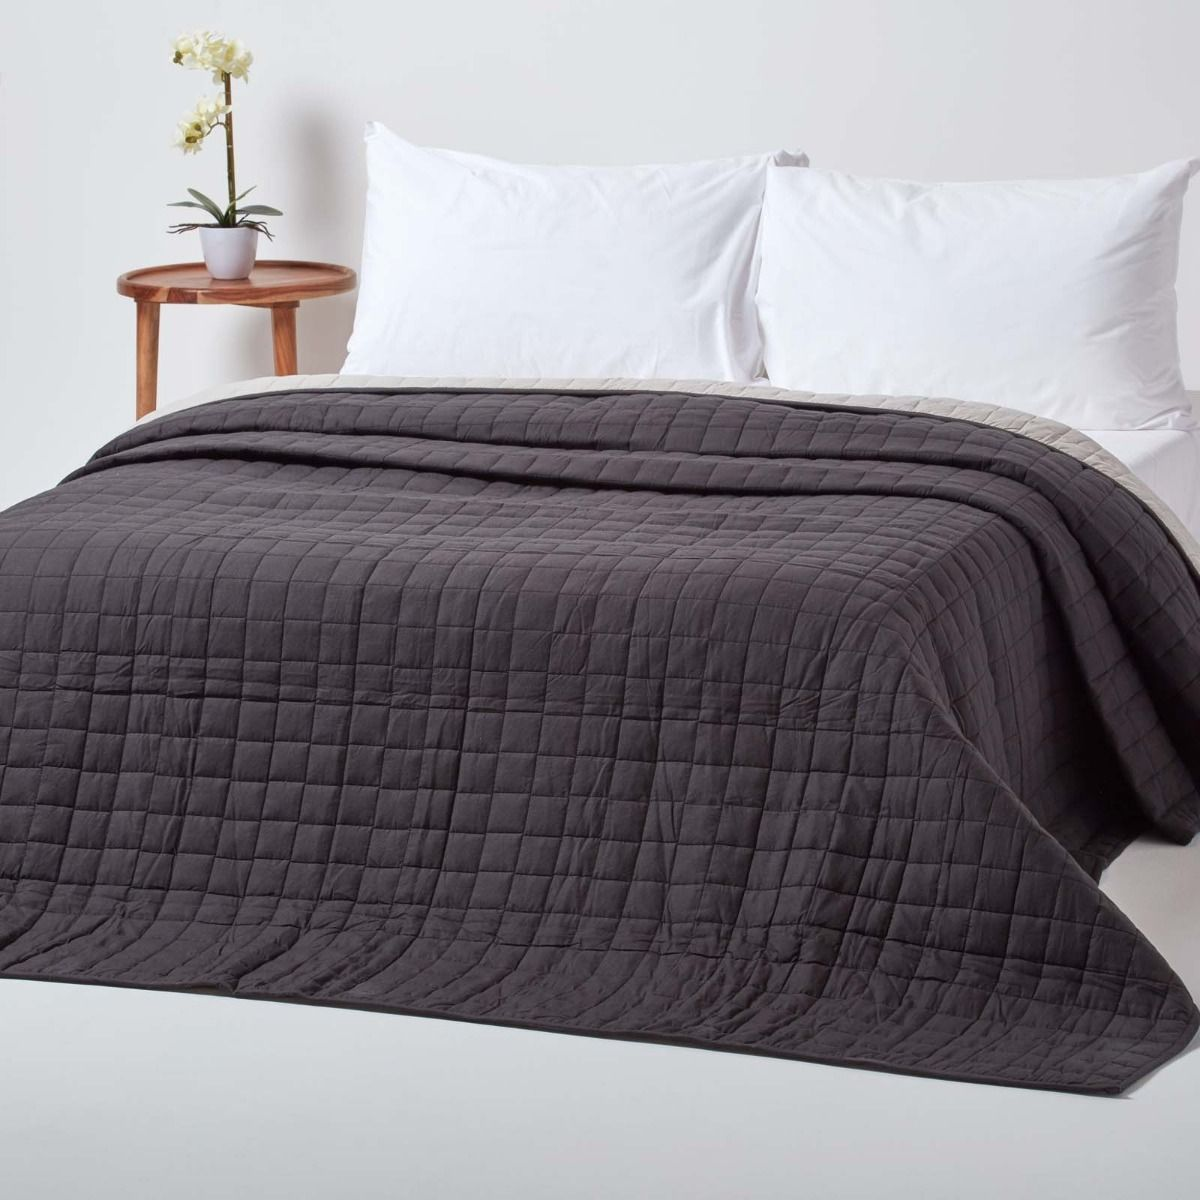 Cotton Quilted Reversible Bedspread